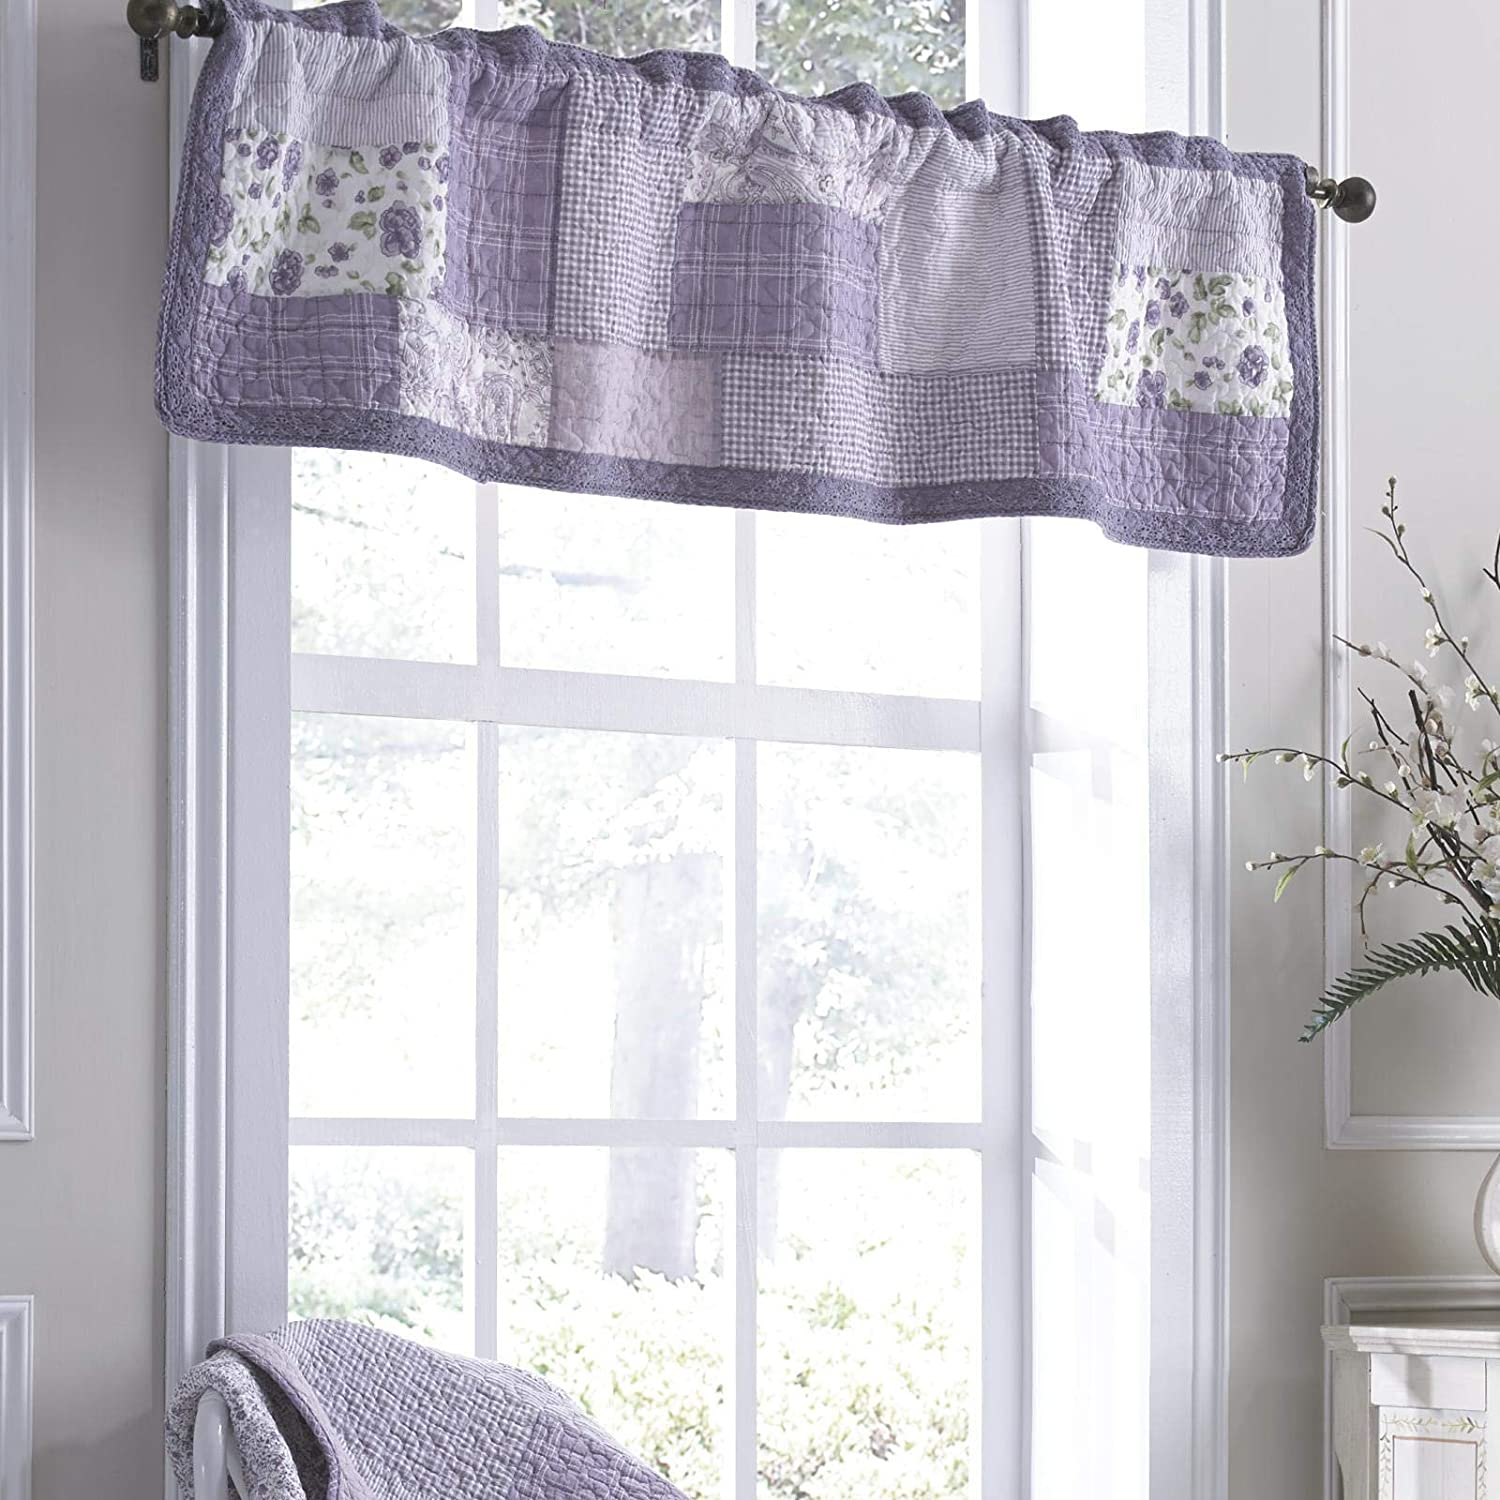 Donna Sharp Sales for sale Valance - Lavender Wind Chicago Mall Contemporary Decorative Rose